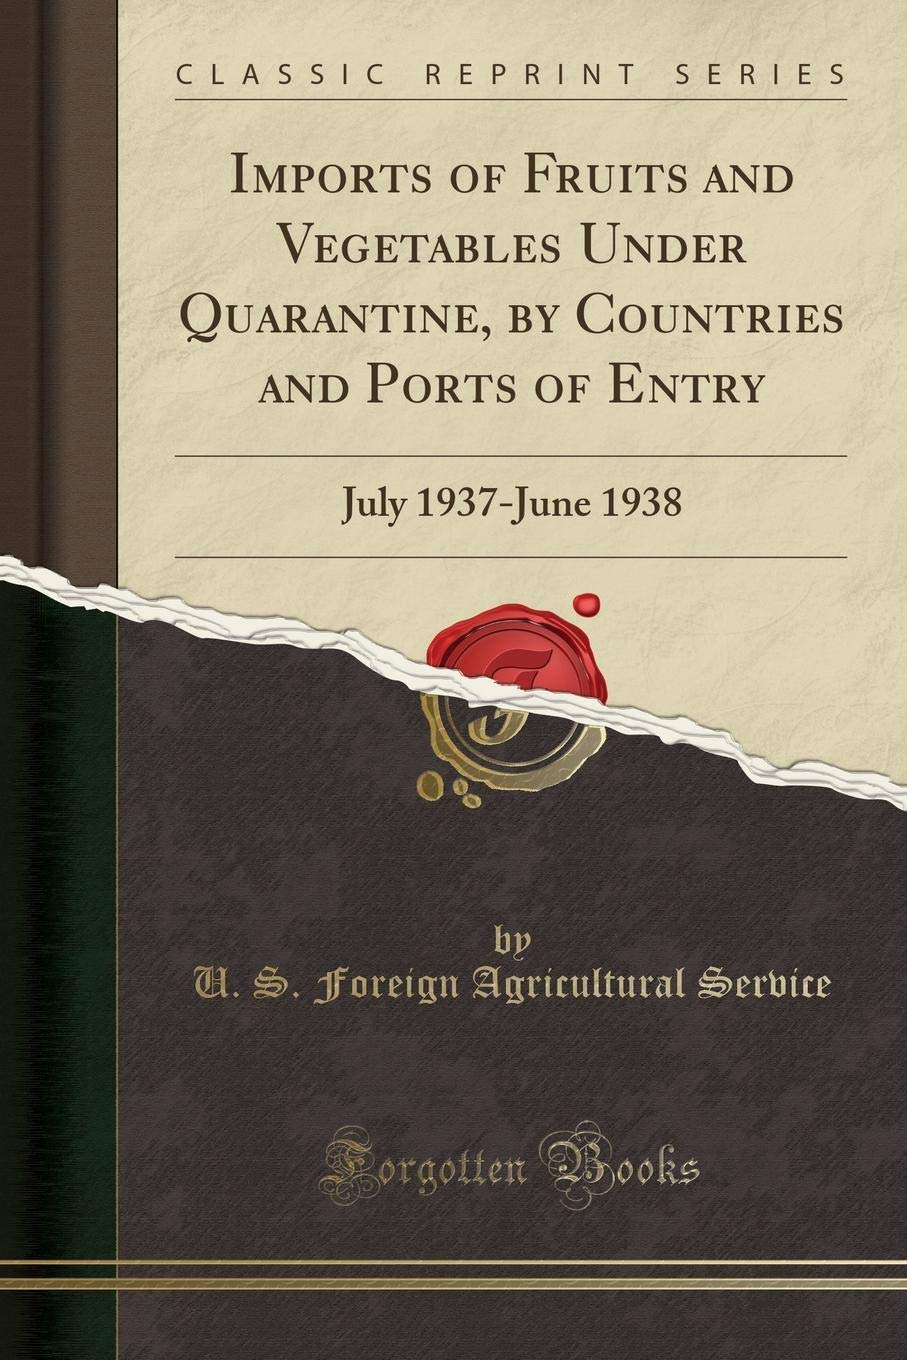 Imports of Fruits and Vegetables Under Quarantine, by